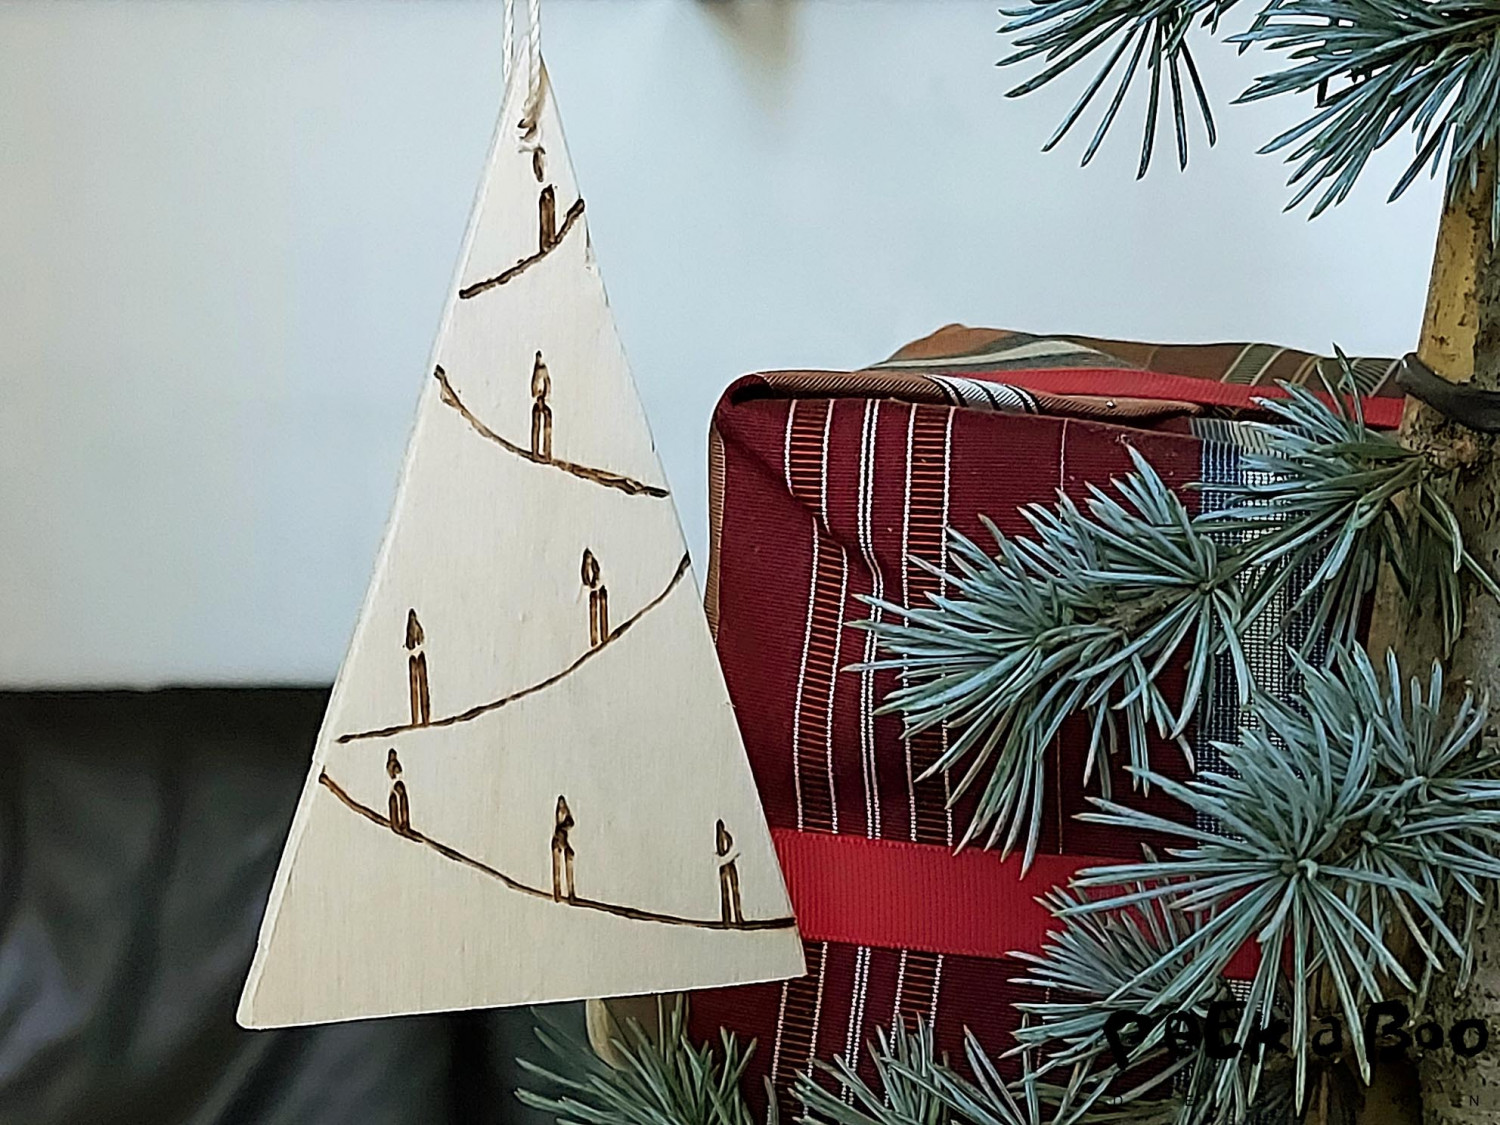 The easy peacy made christmas tree ornament made in plywood.